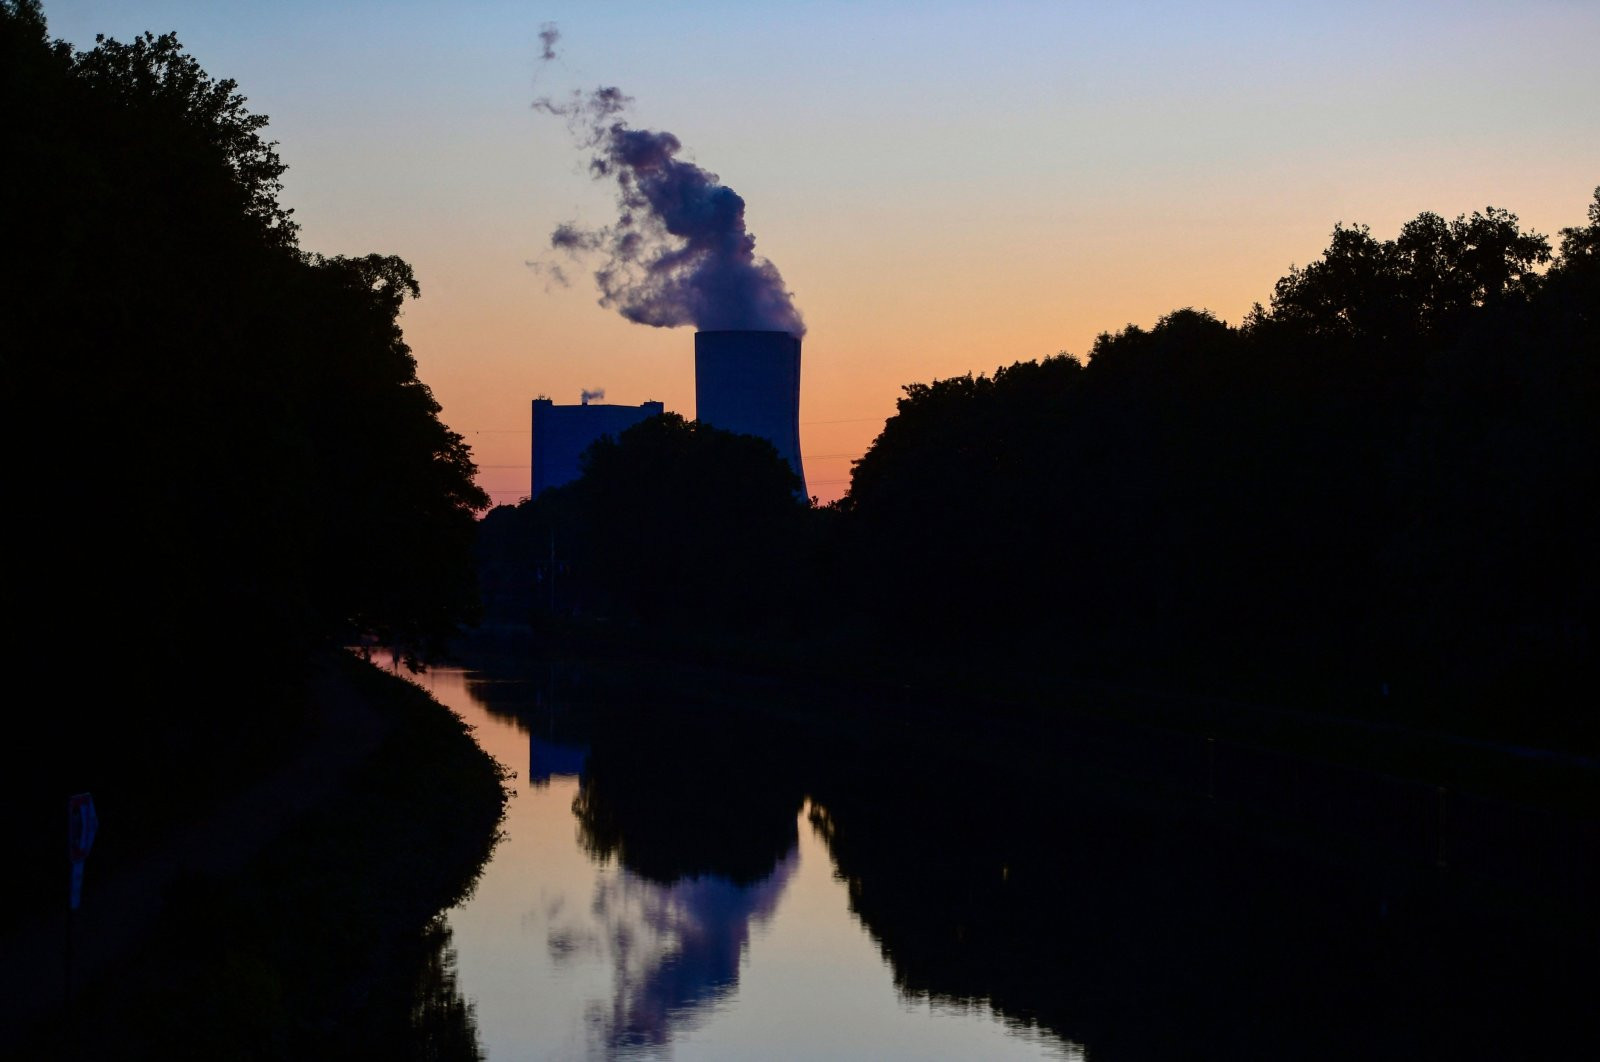 Steam rises from the cooling tower of coal-fired power plant Datteln 4 of Uniper in Datteln, western Germany, May 30, 2020. (AFP Photo)